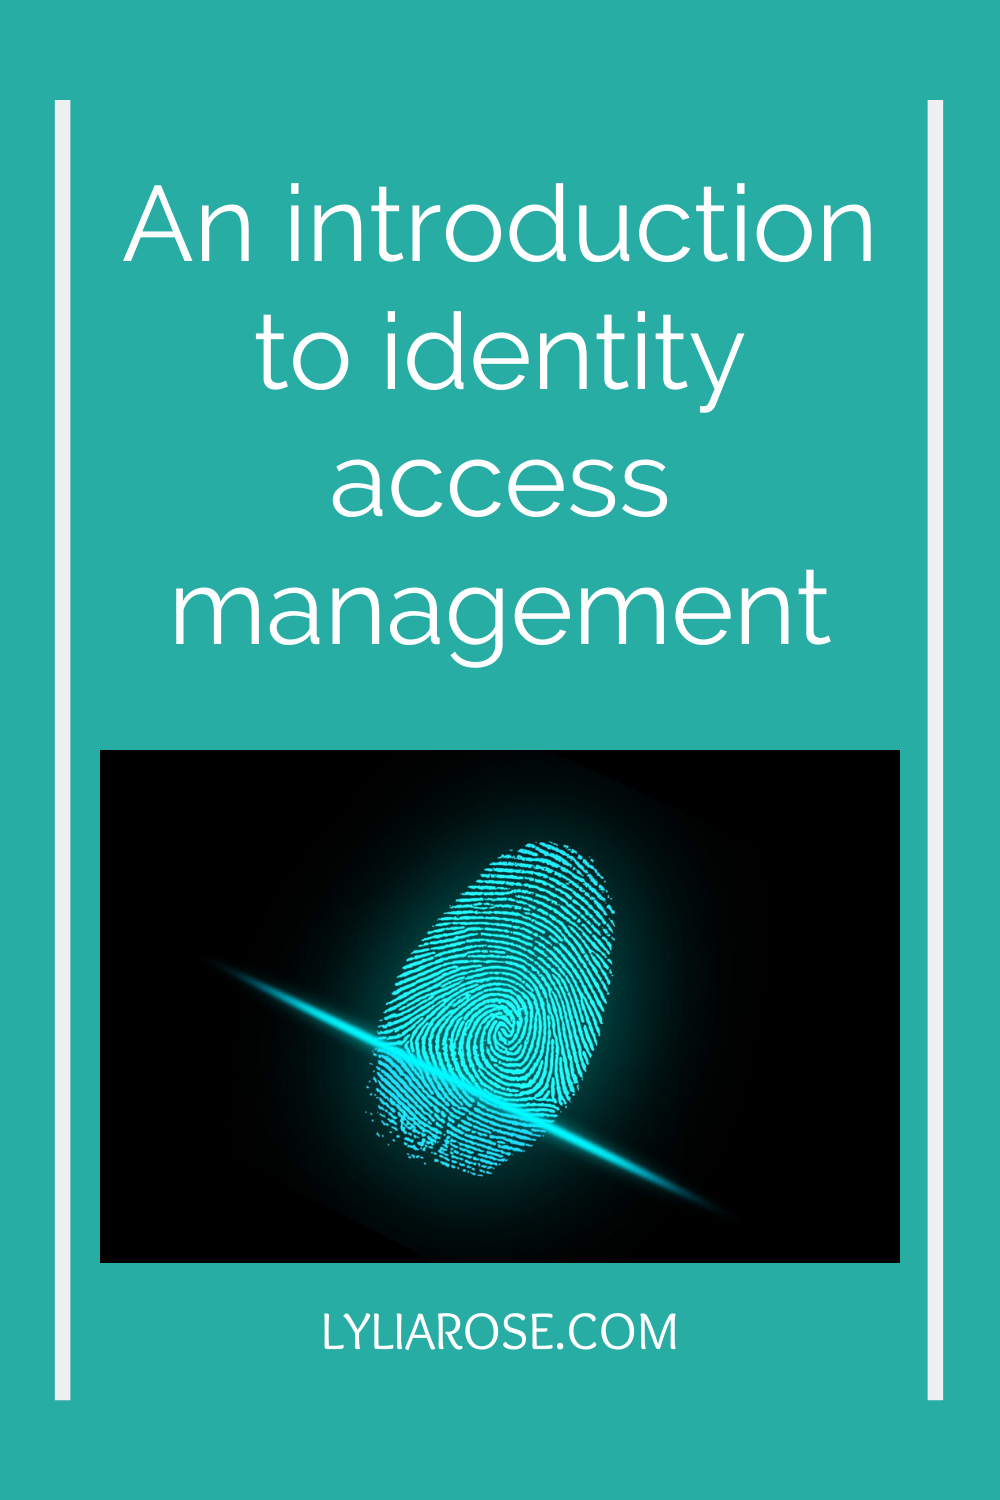 An introduction to identity access management